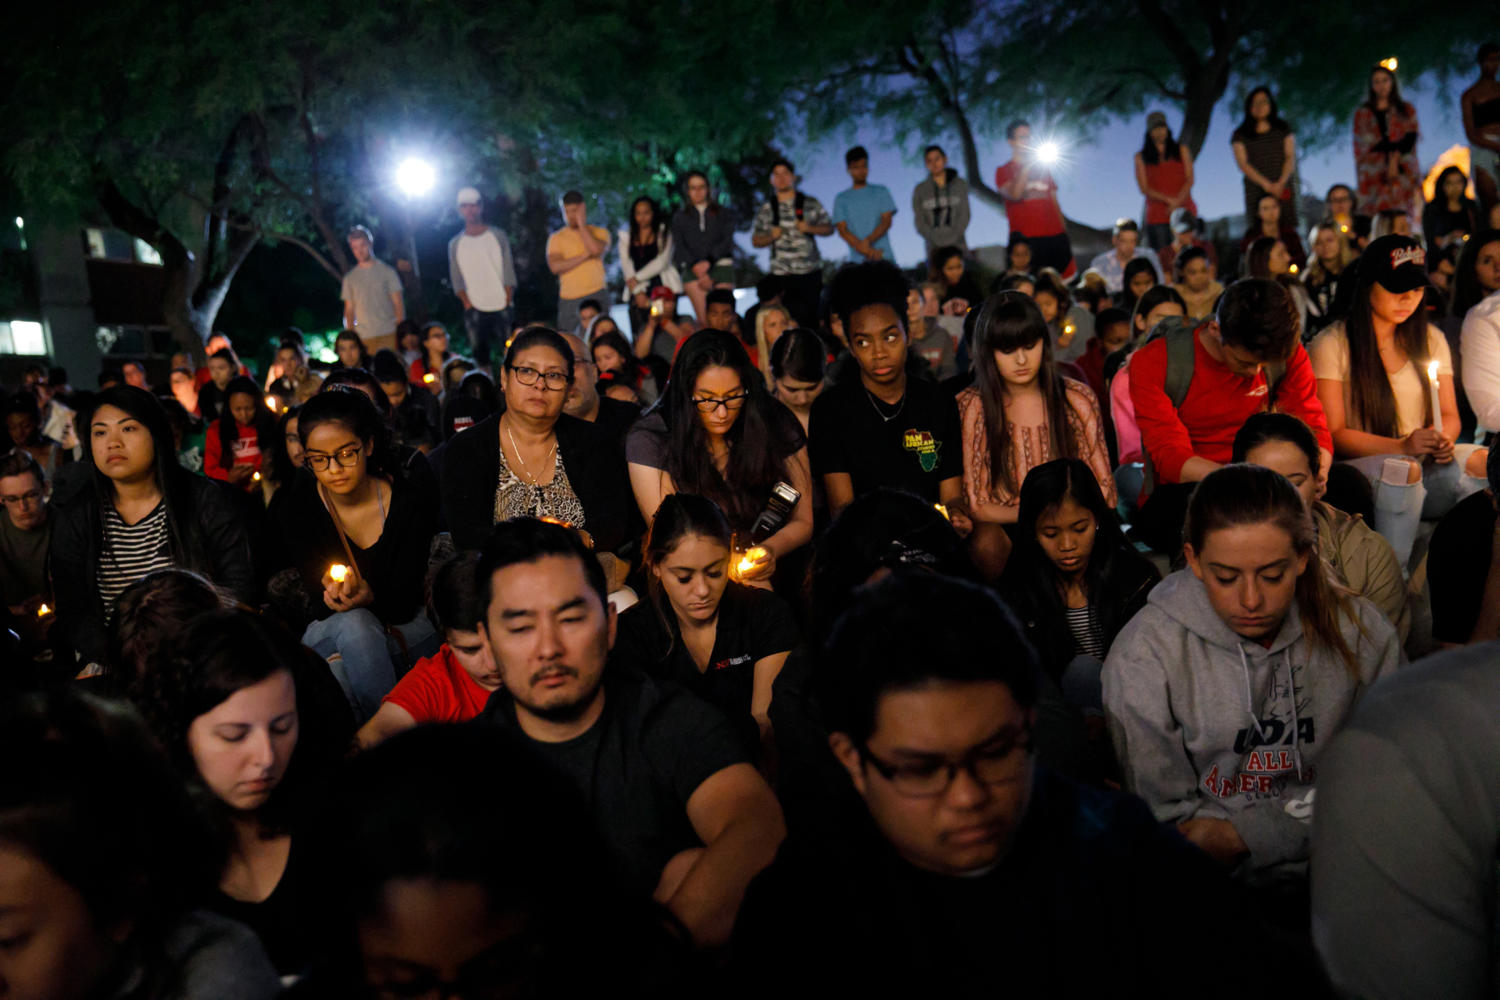 UNLV students hold a moment of silence for the victims of the mass shooting that killed 59 people and injured more than 525 on Oct. 2, 2017 in Las Vegas. (Marcus Yam/Los Angeles Times/TNS)